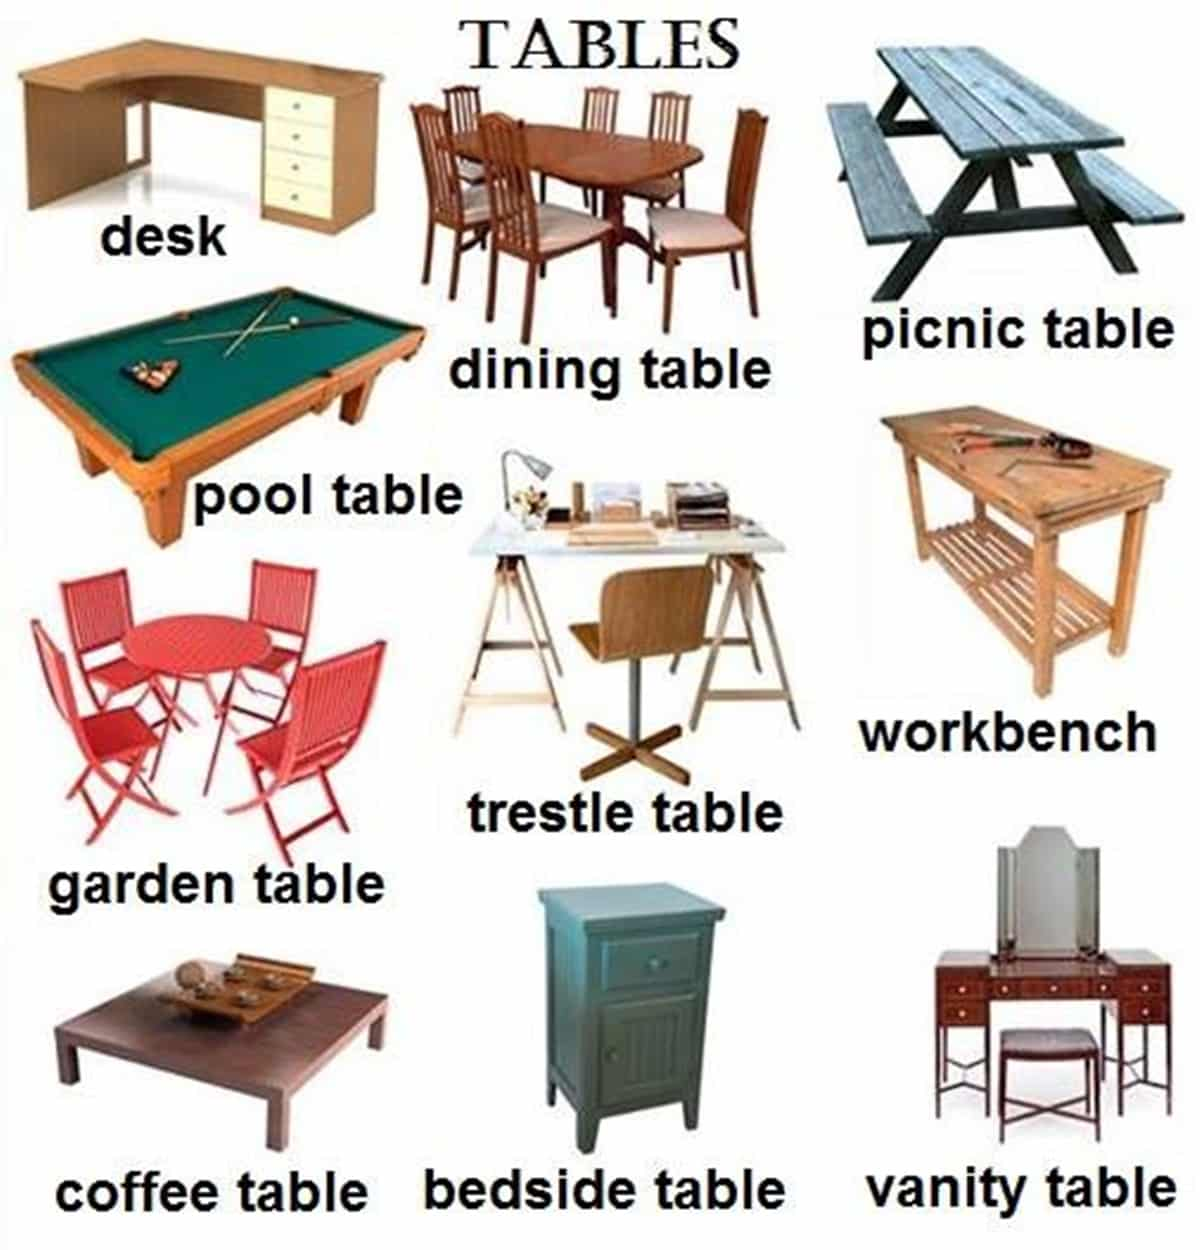 Furniture vocabulary 250 items illustrated esl buzz for Living room vocabulary